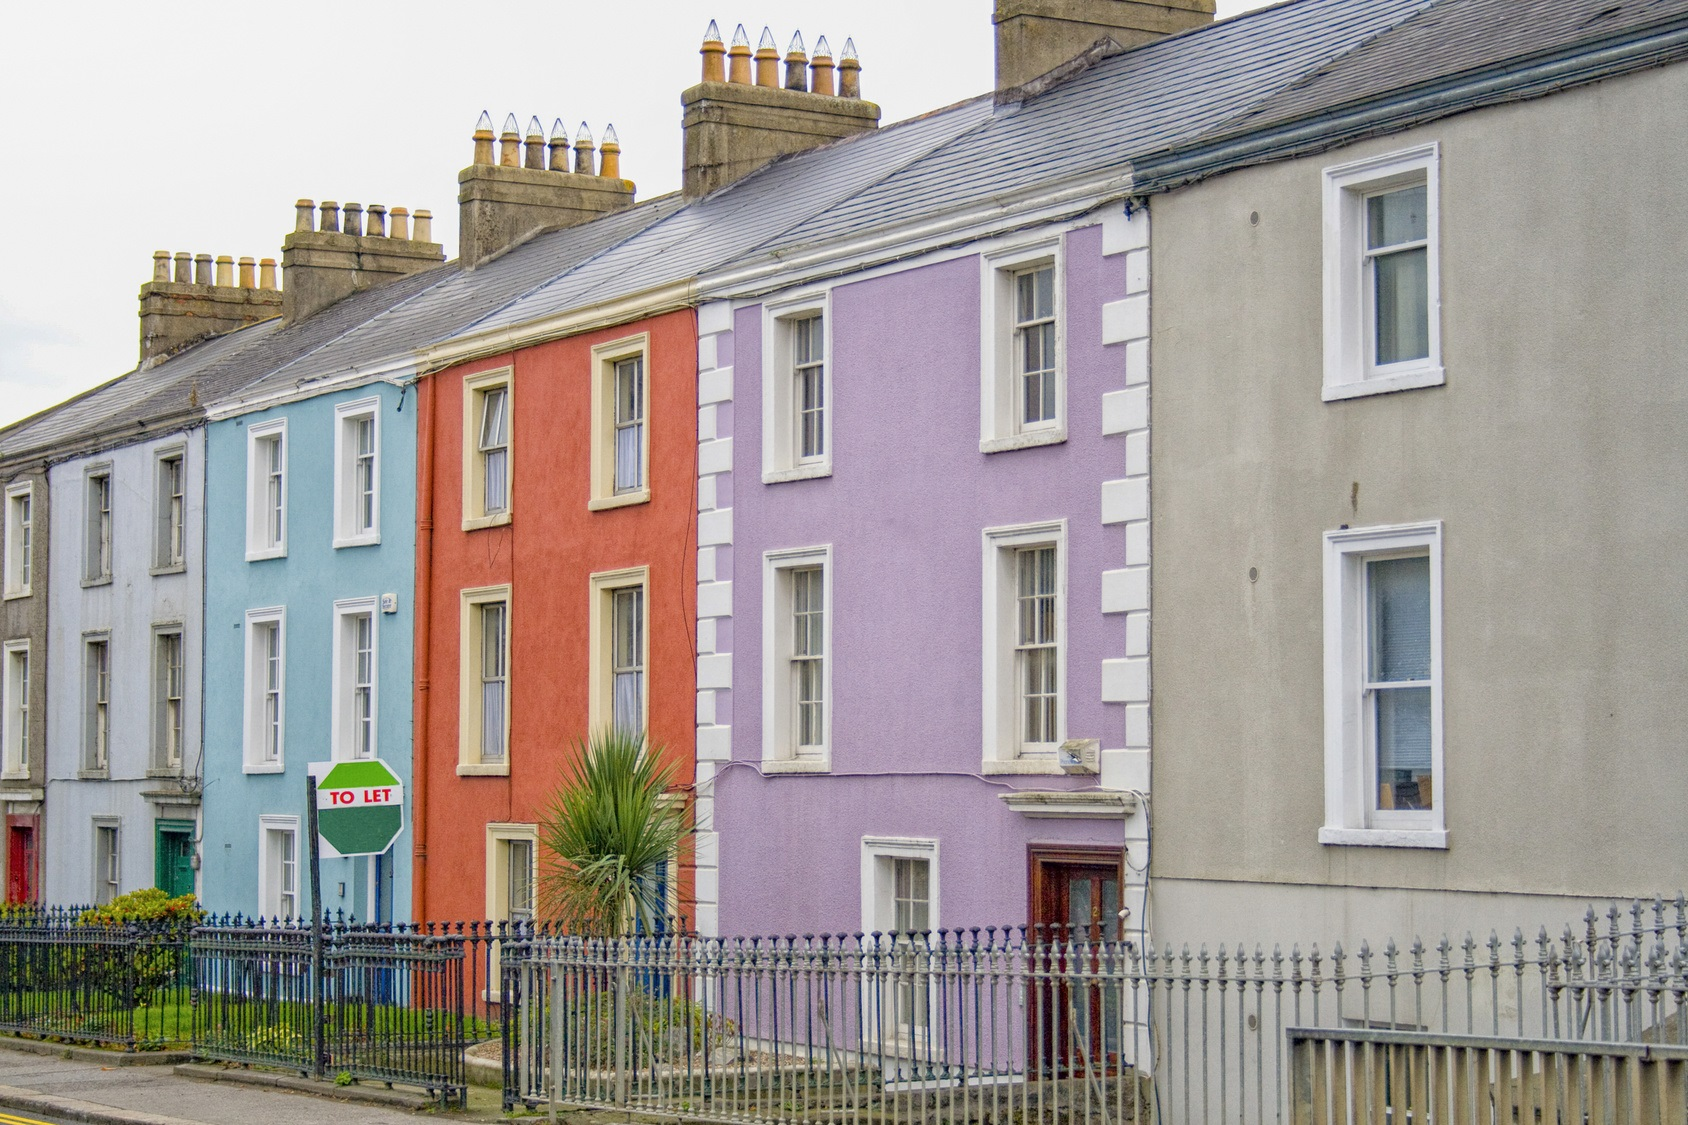 Colorful houses on a row in a Dublin street with a to let sign in front of one of them